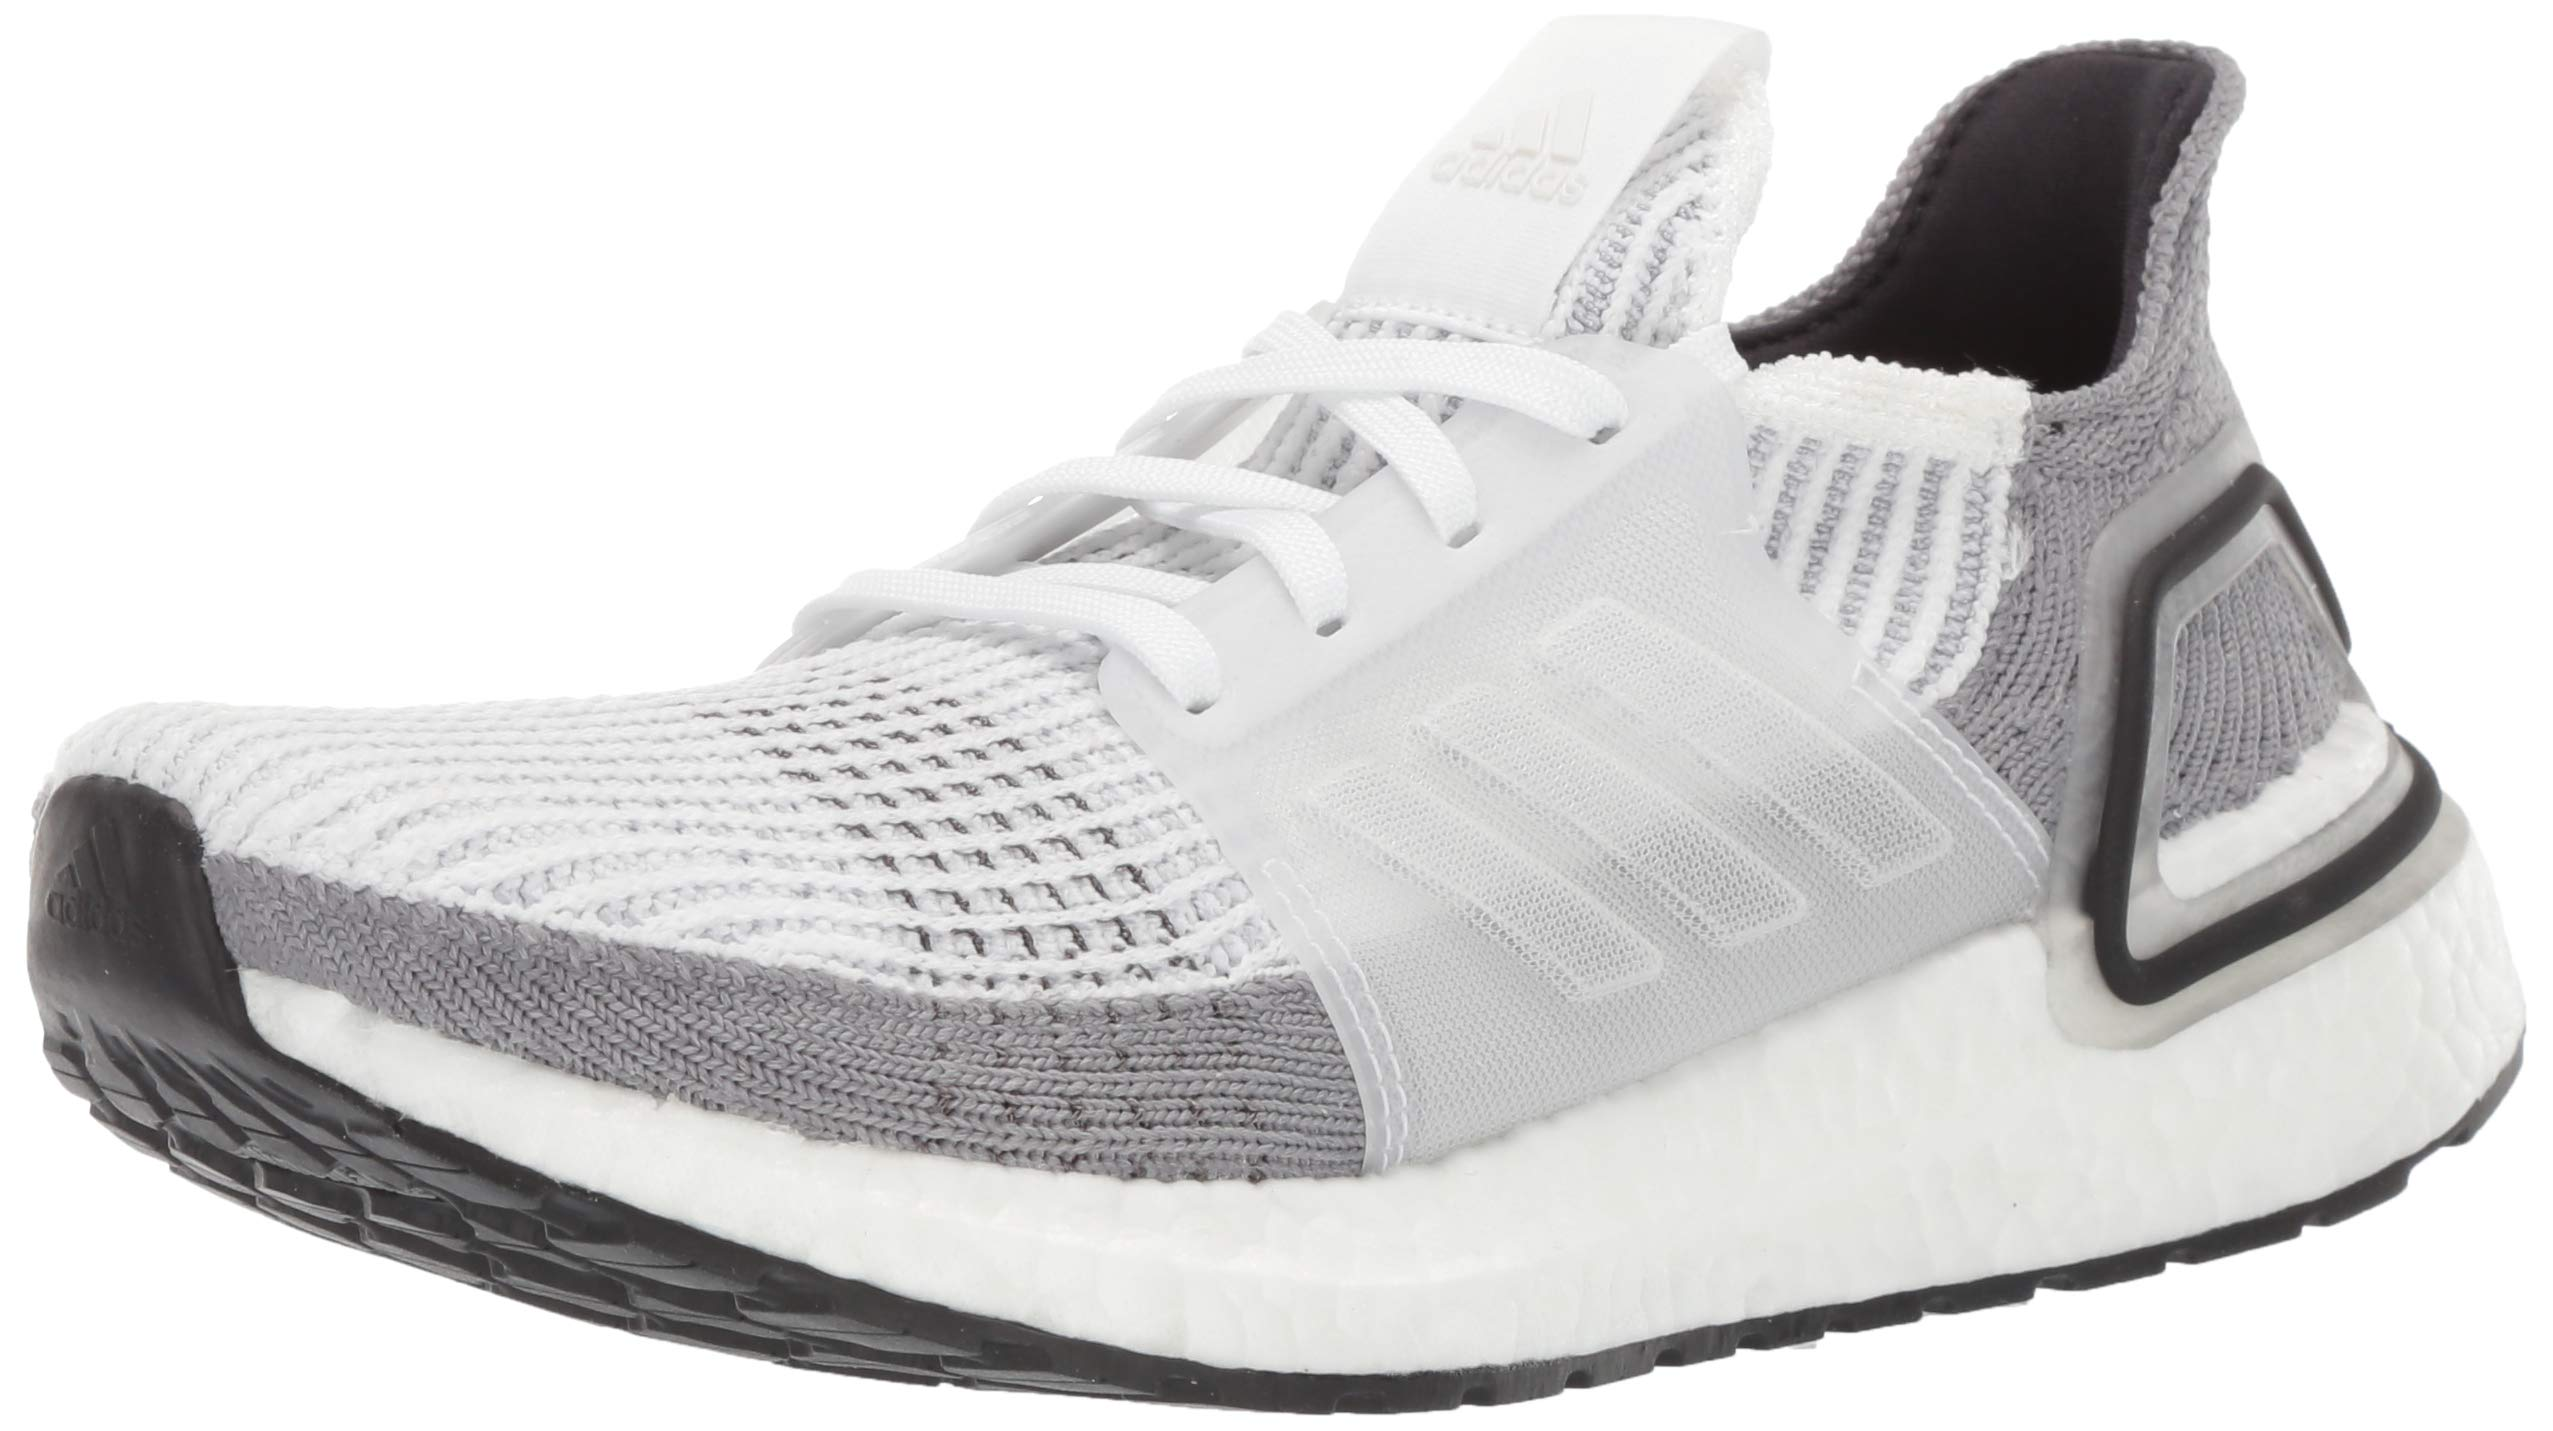 adidas Women's Ultraboost 19 Crystal White/Grey, 11 M US by adidas